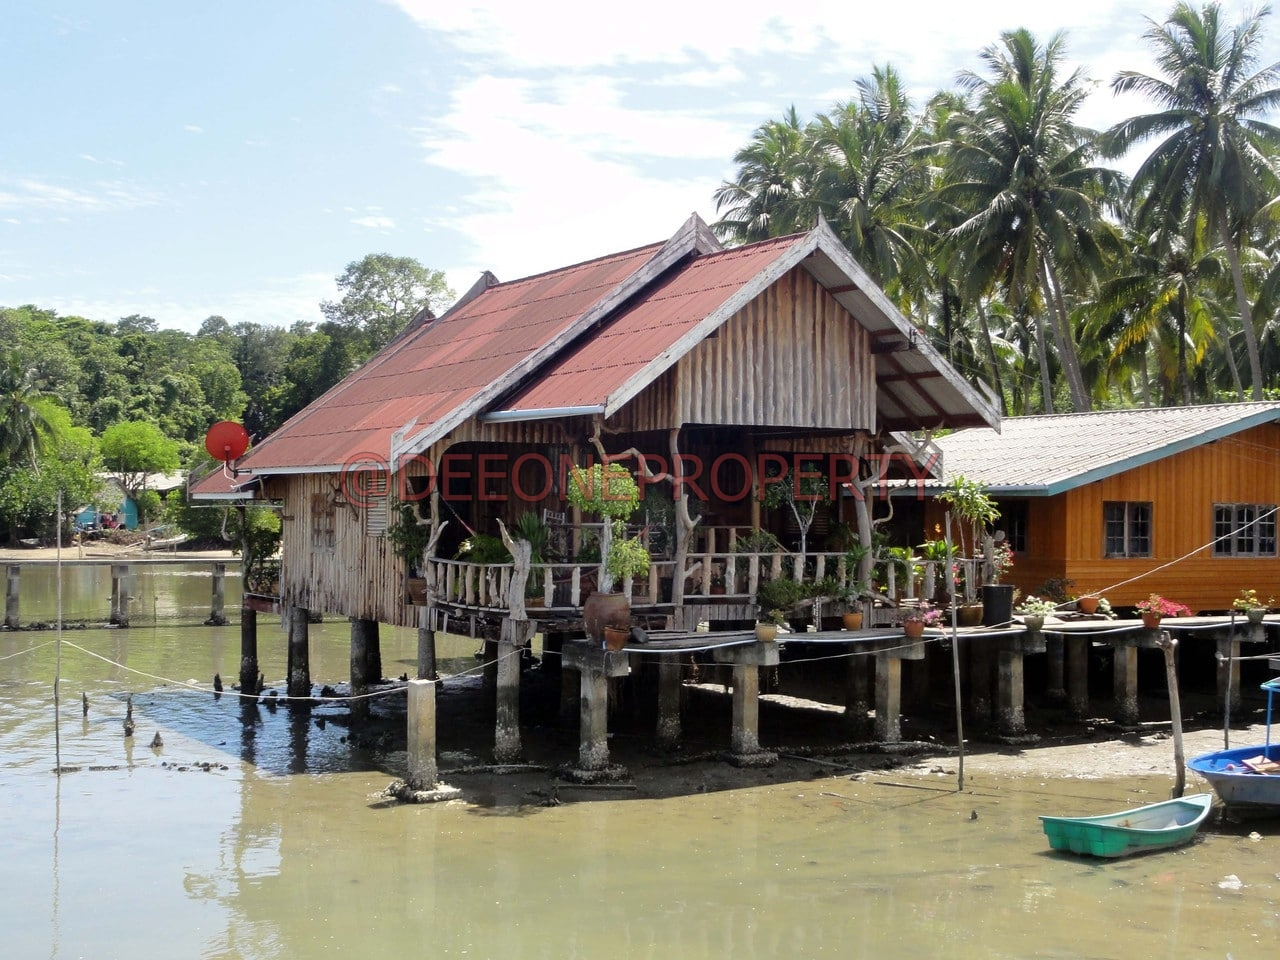 3 Bedroom House on stilts for rent – Bang Bao, Koh Chang